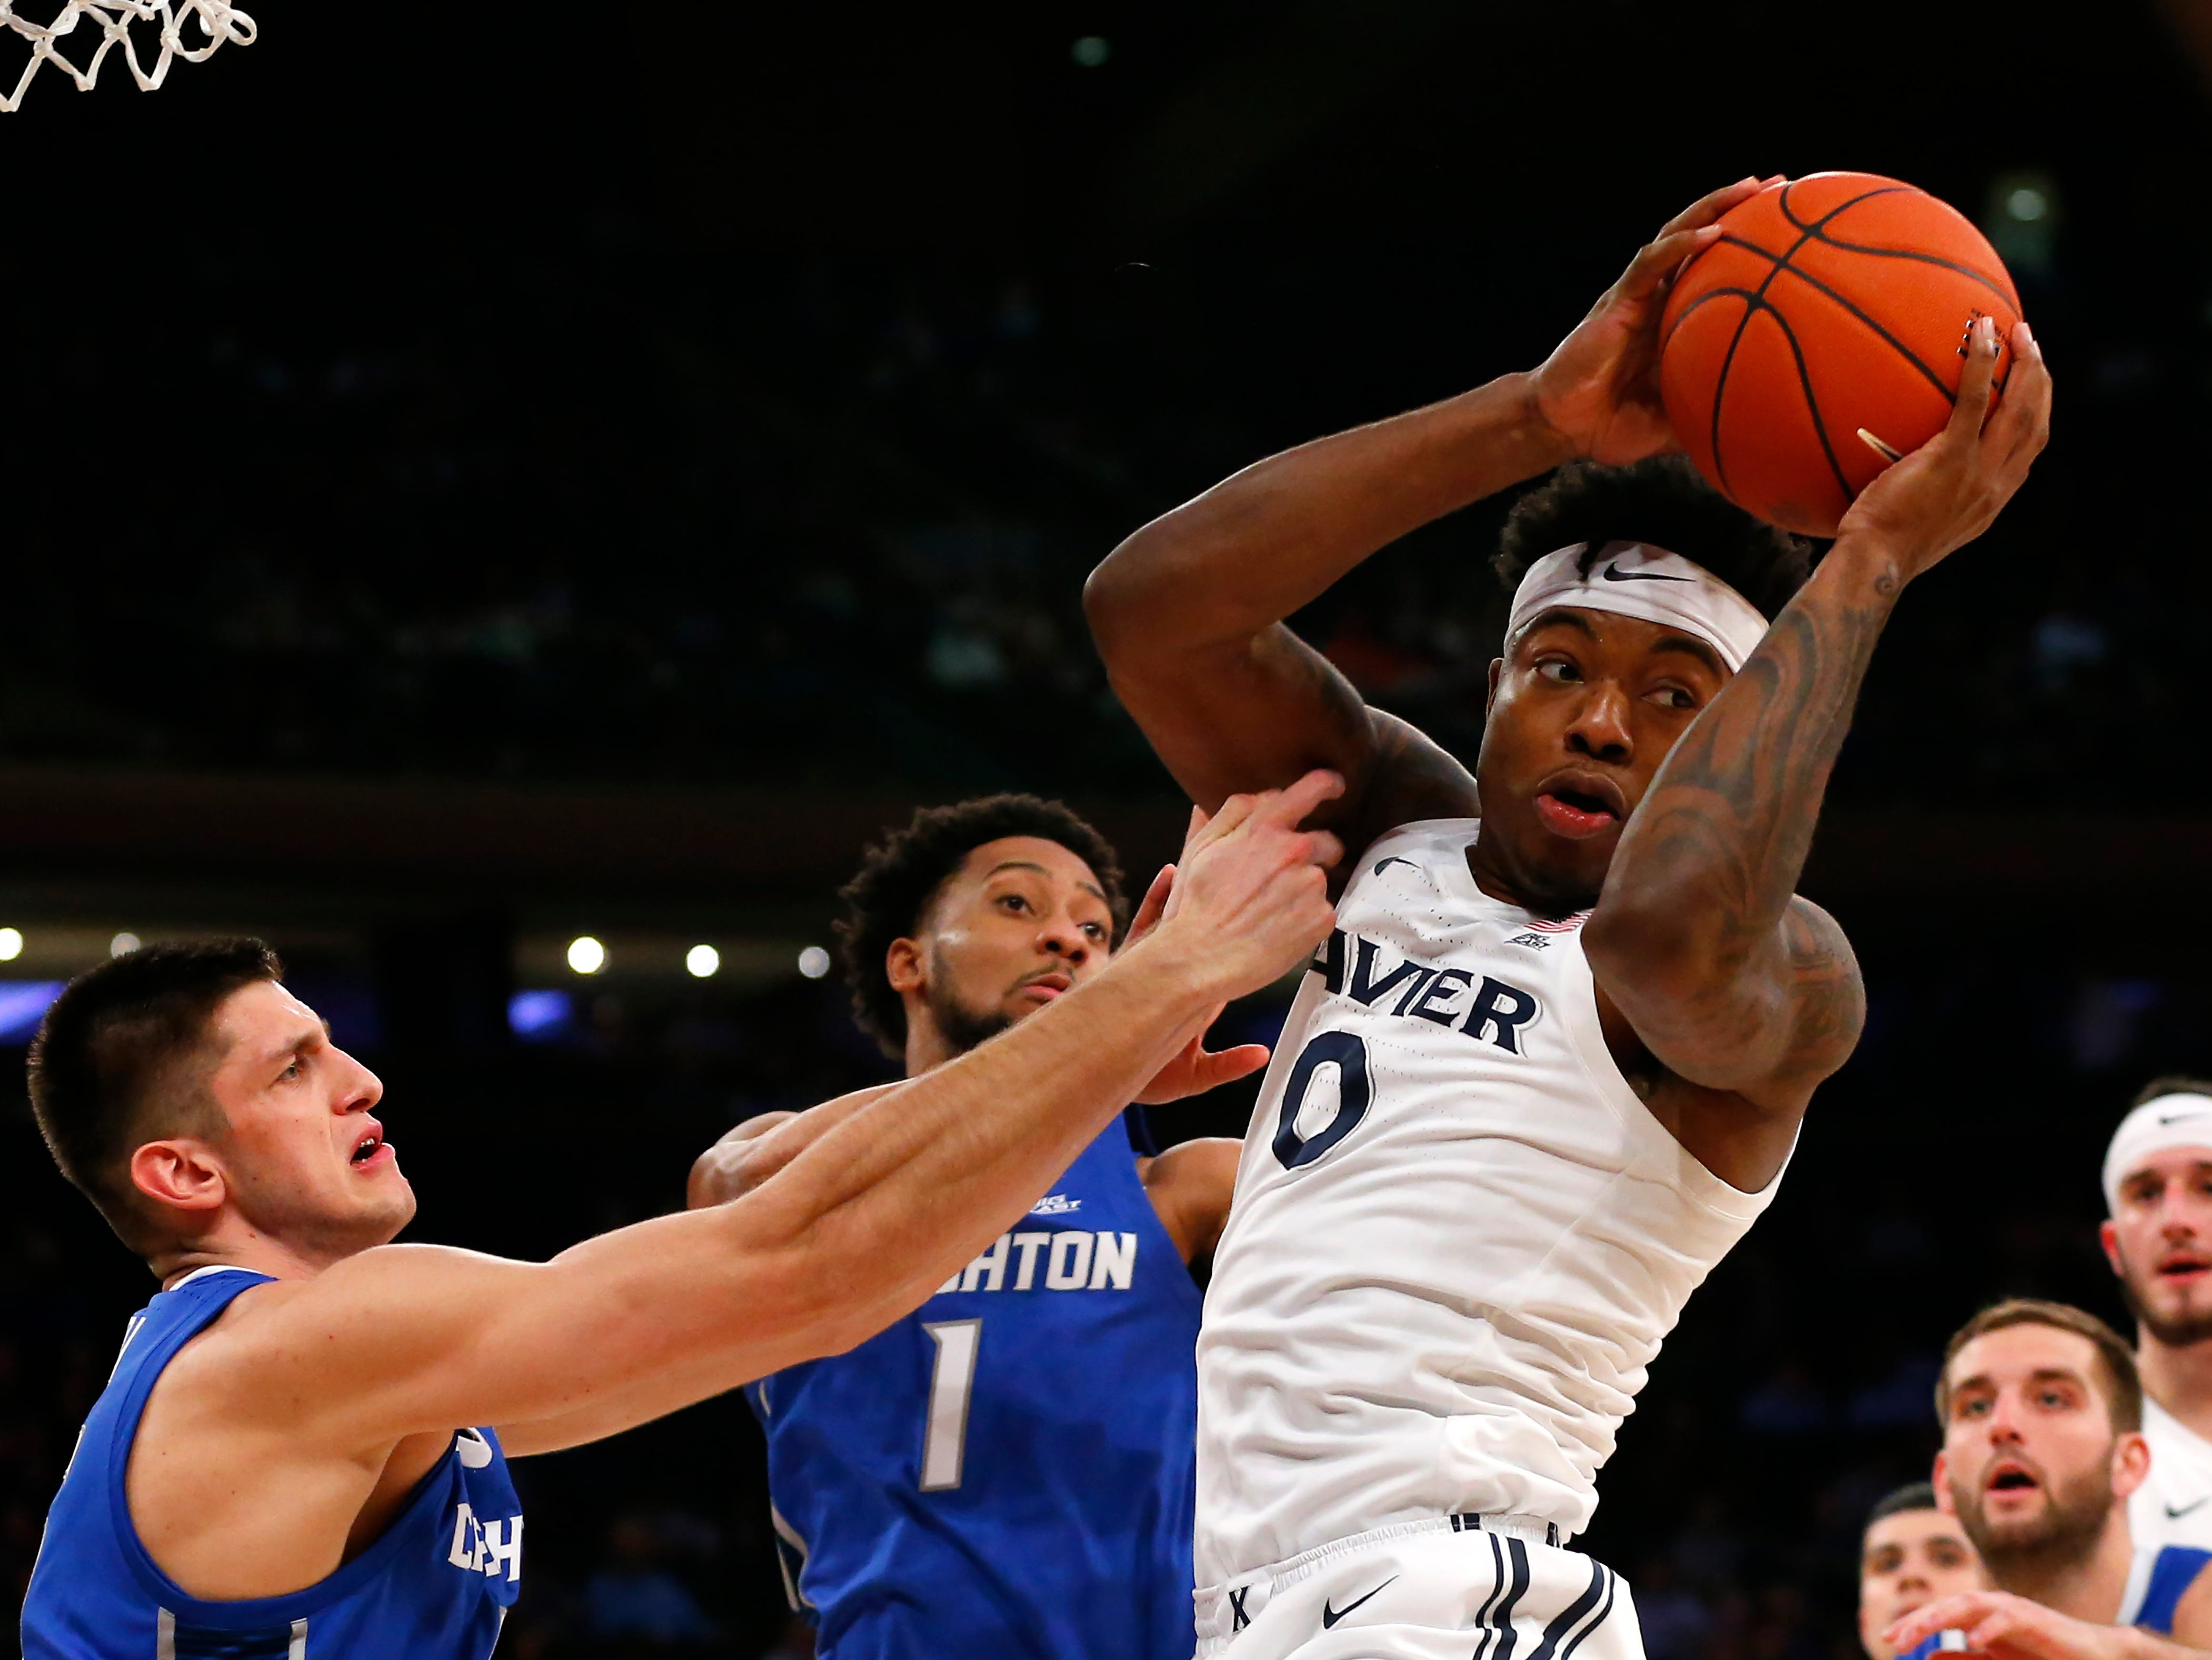 Creighton Bluejays forward Martin Krampelj (15) and guard Davion Mintz (1) defend against Xavier Musketeers forward Tyrique Jones (0) during the second half of a quarterfinal game of the Big East conference tournament at Madison Square Garden.